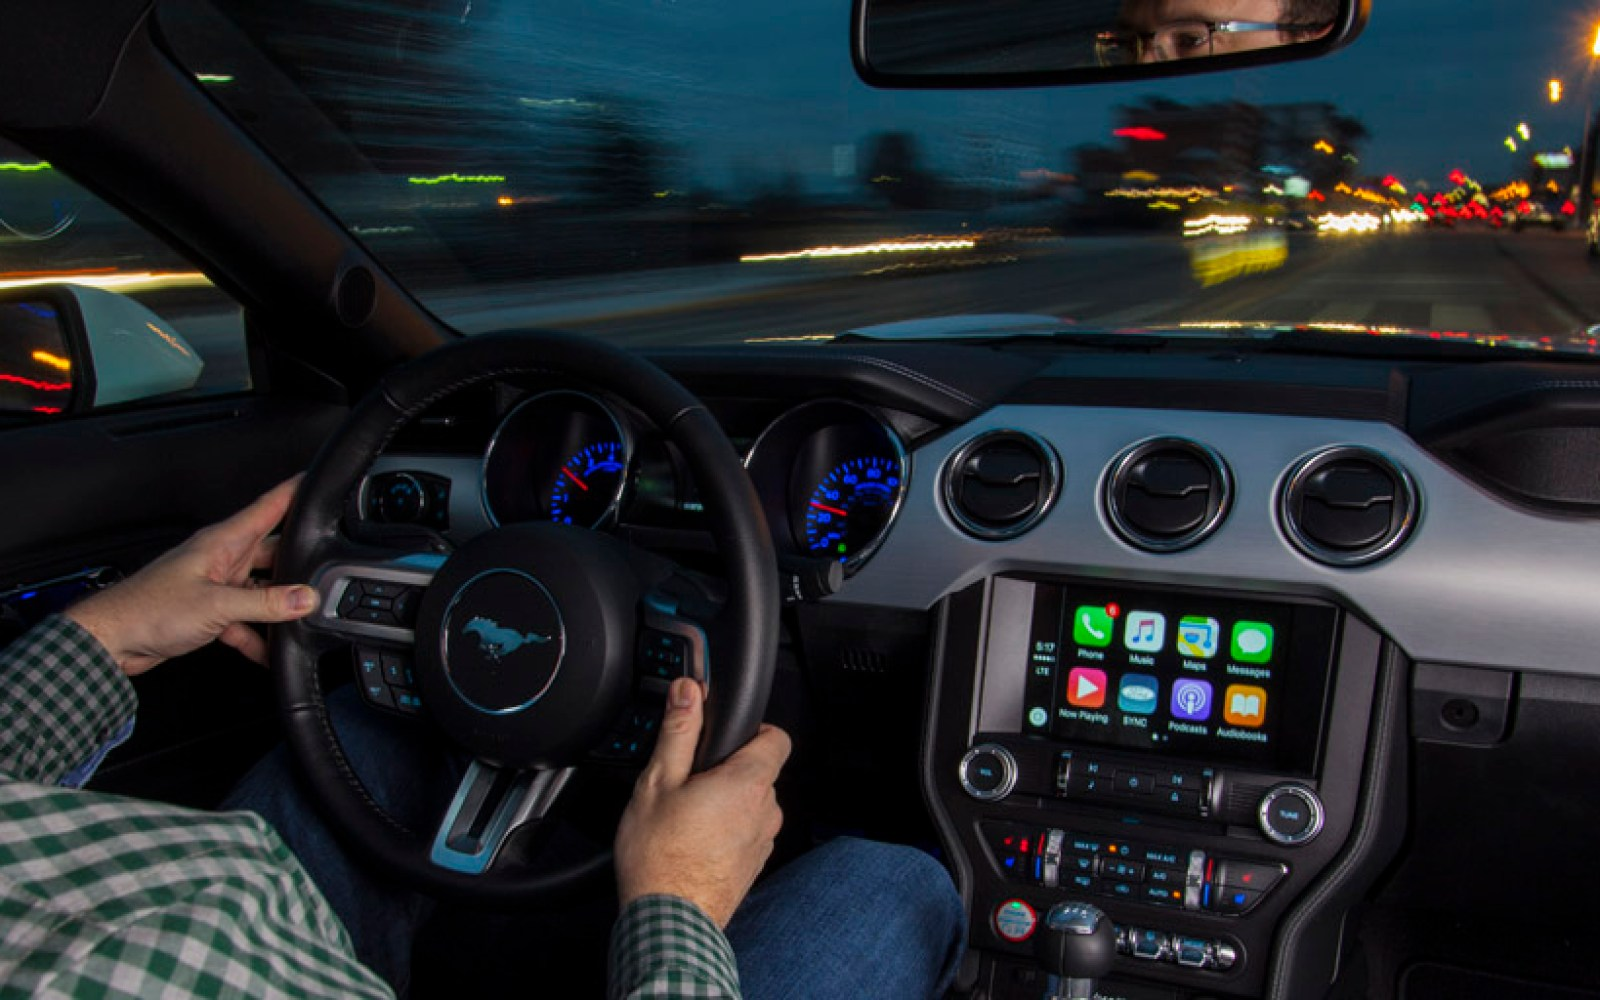 Apple confirms work on autonomous systems to transform 'the future of transportation'